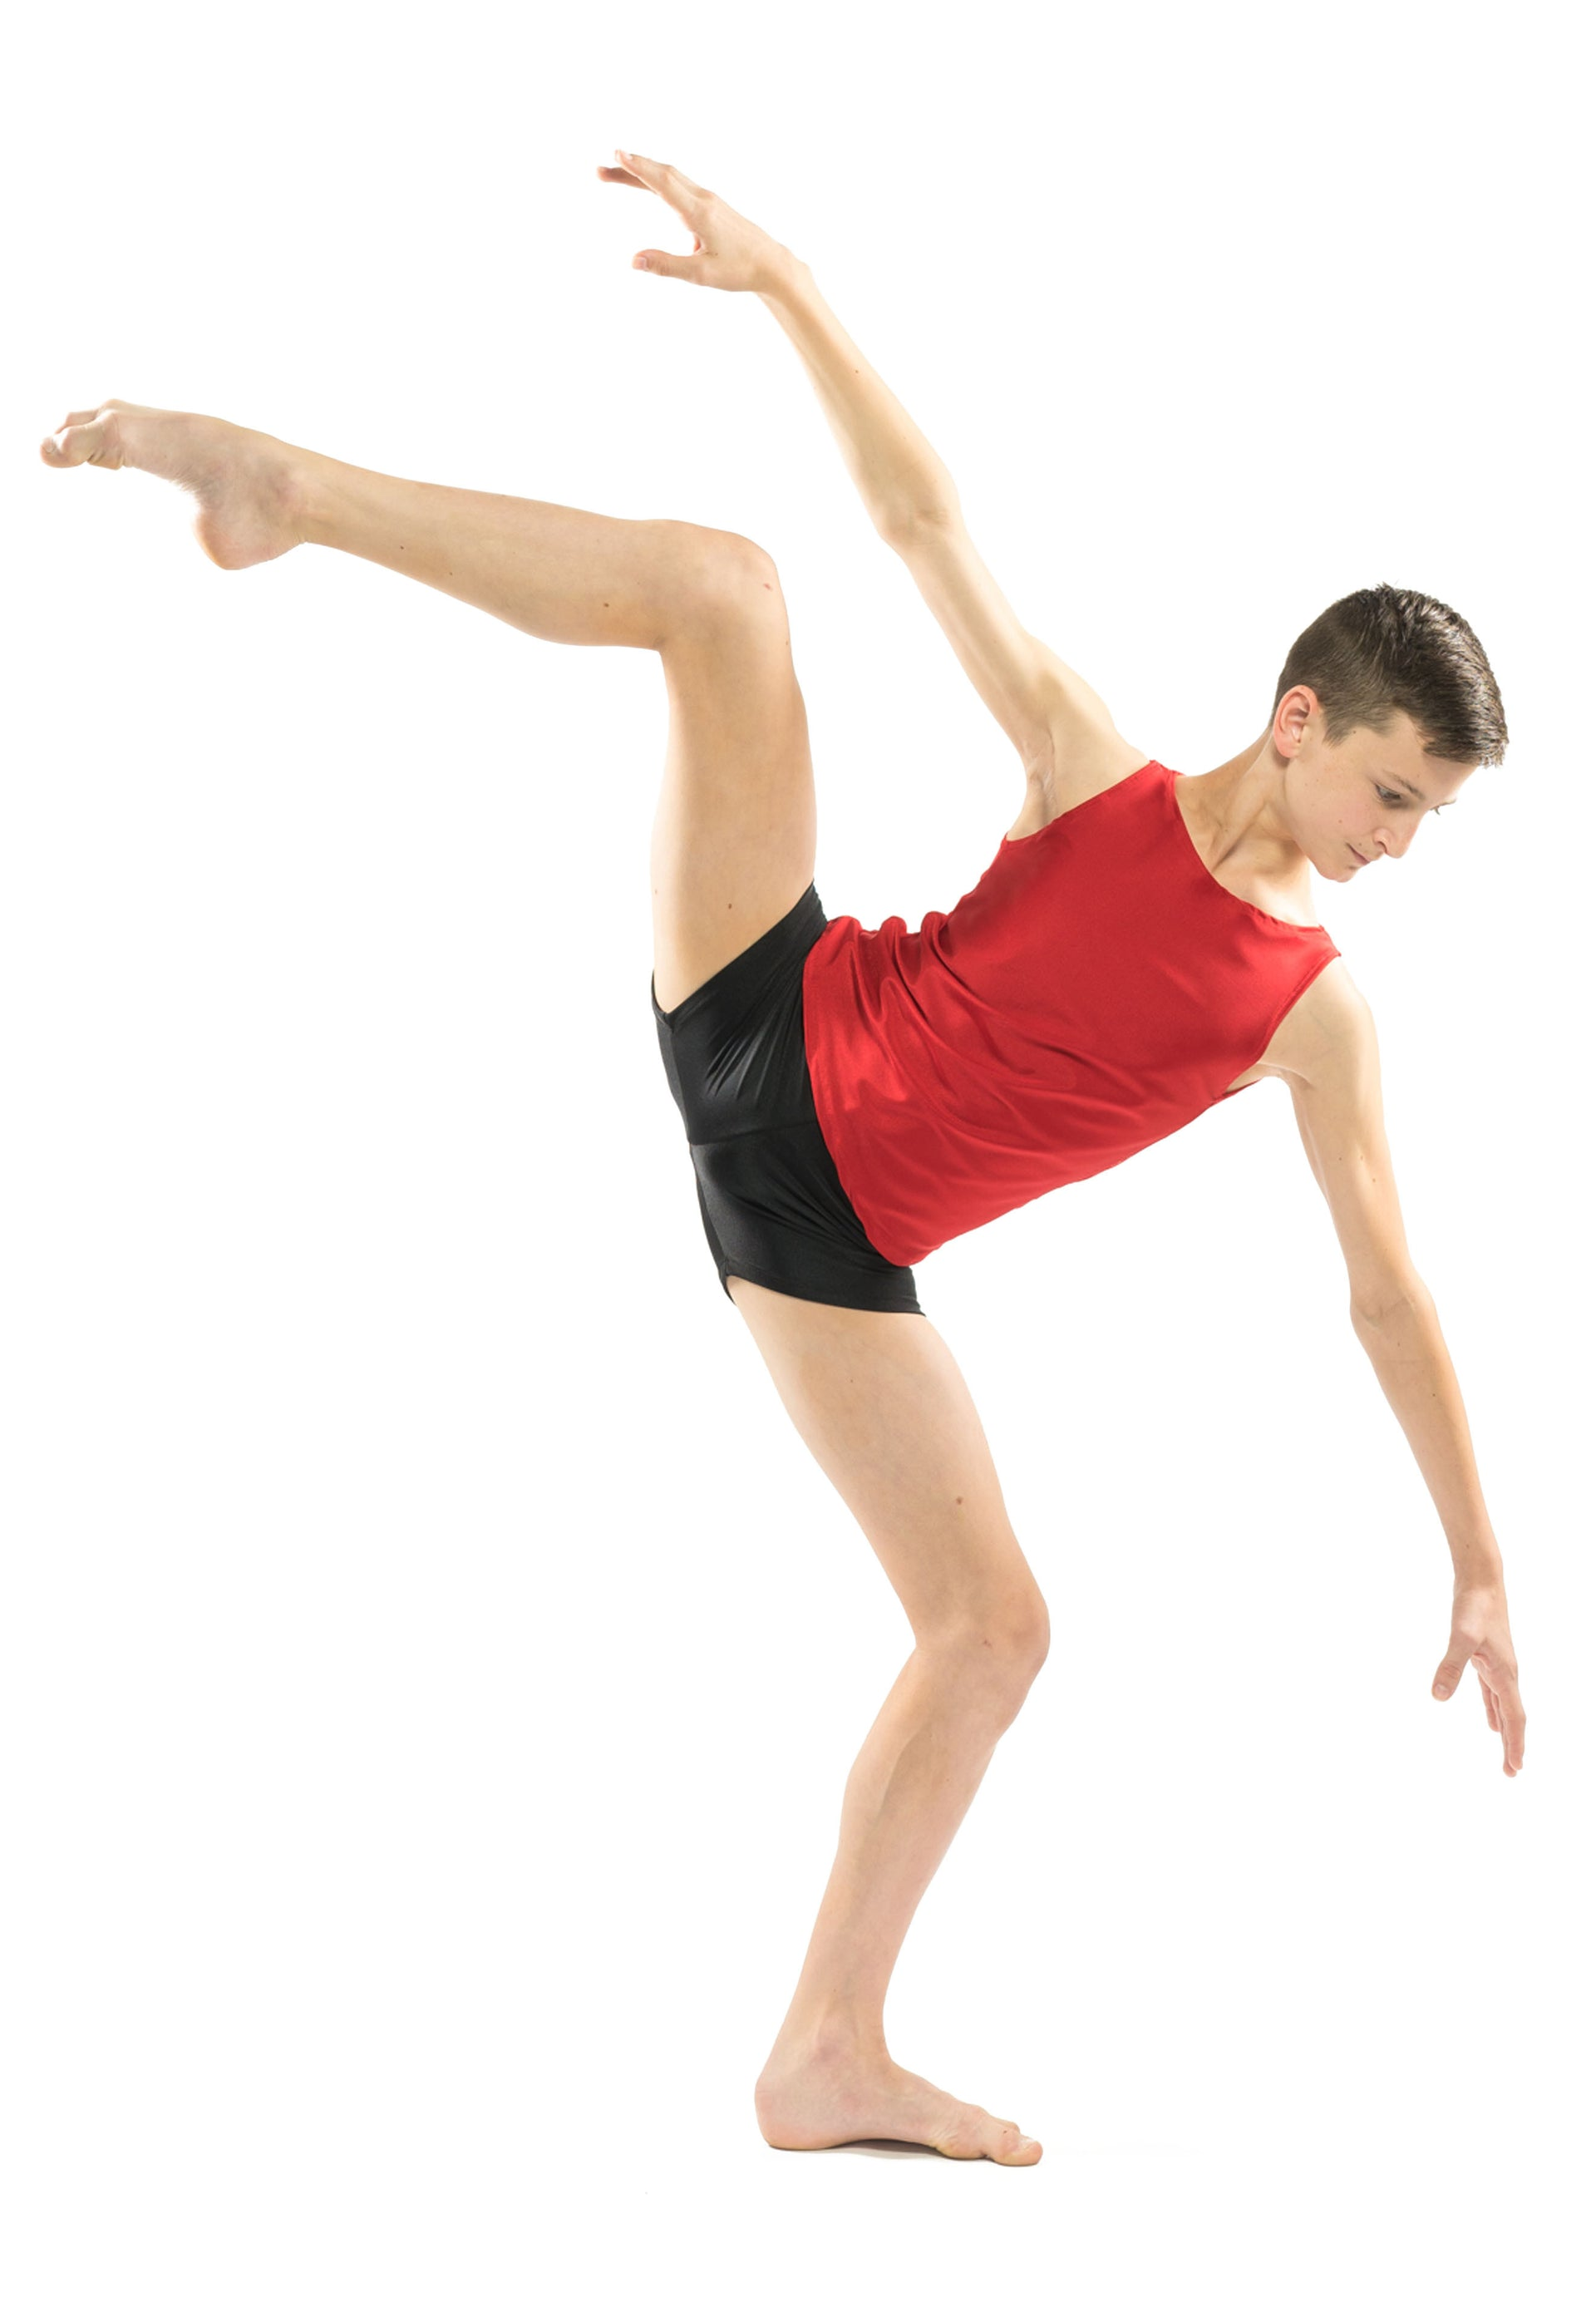 Men's Cut Off Top - Patrick J Design.com, dance wear, costum costumes, dance